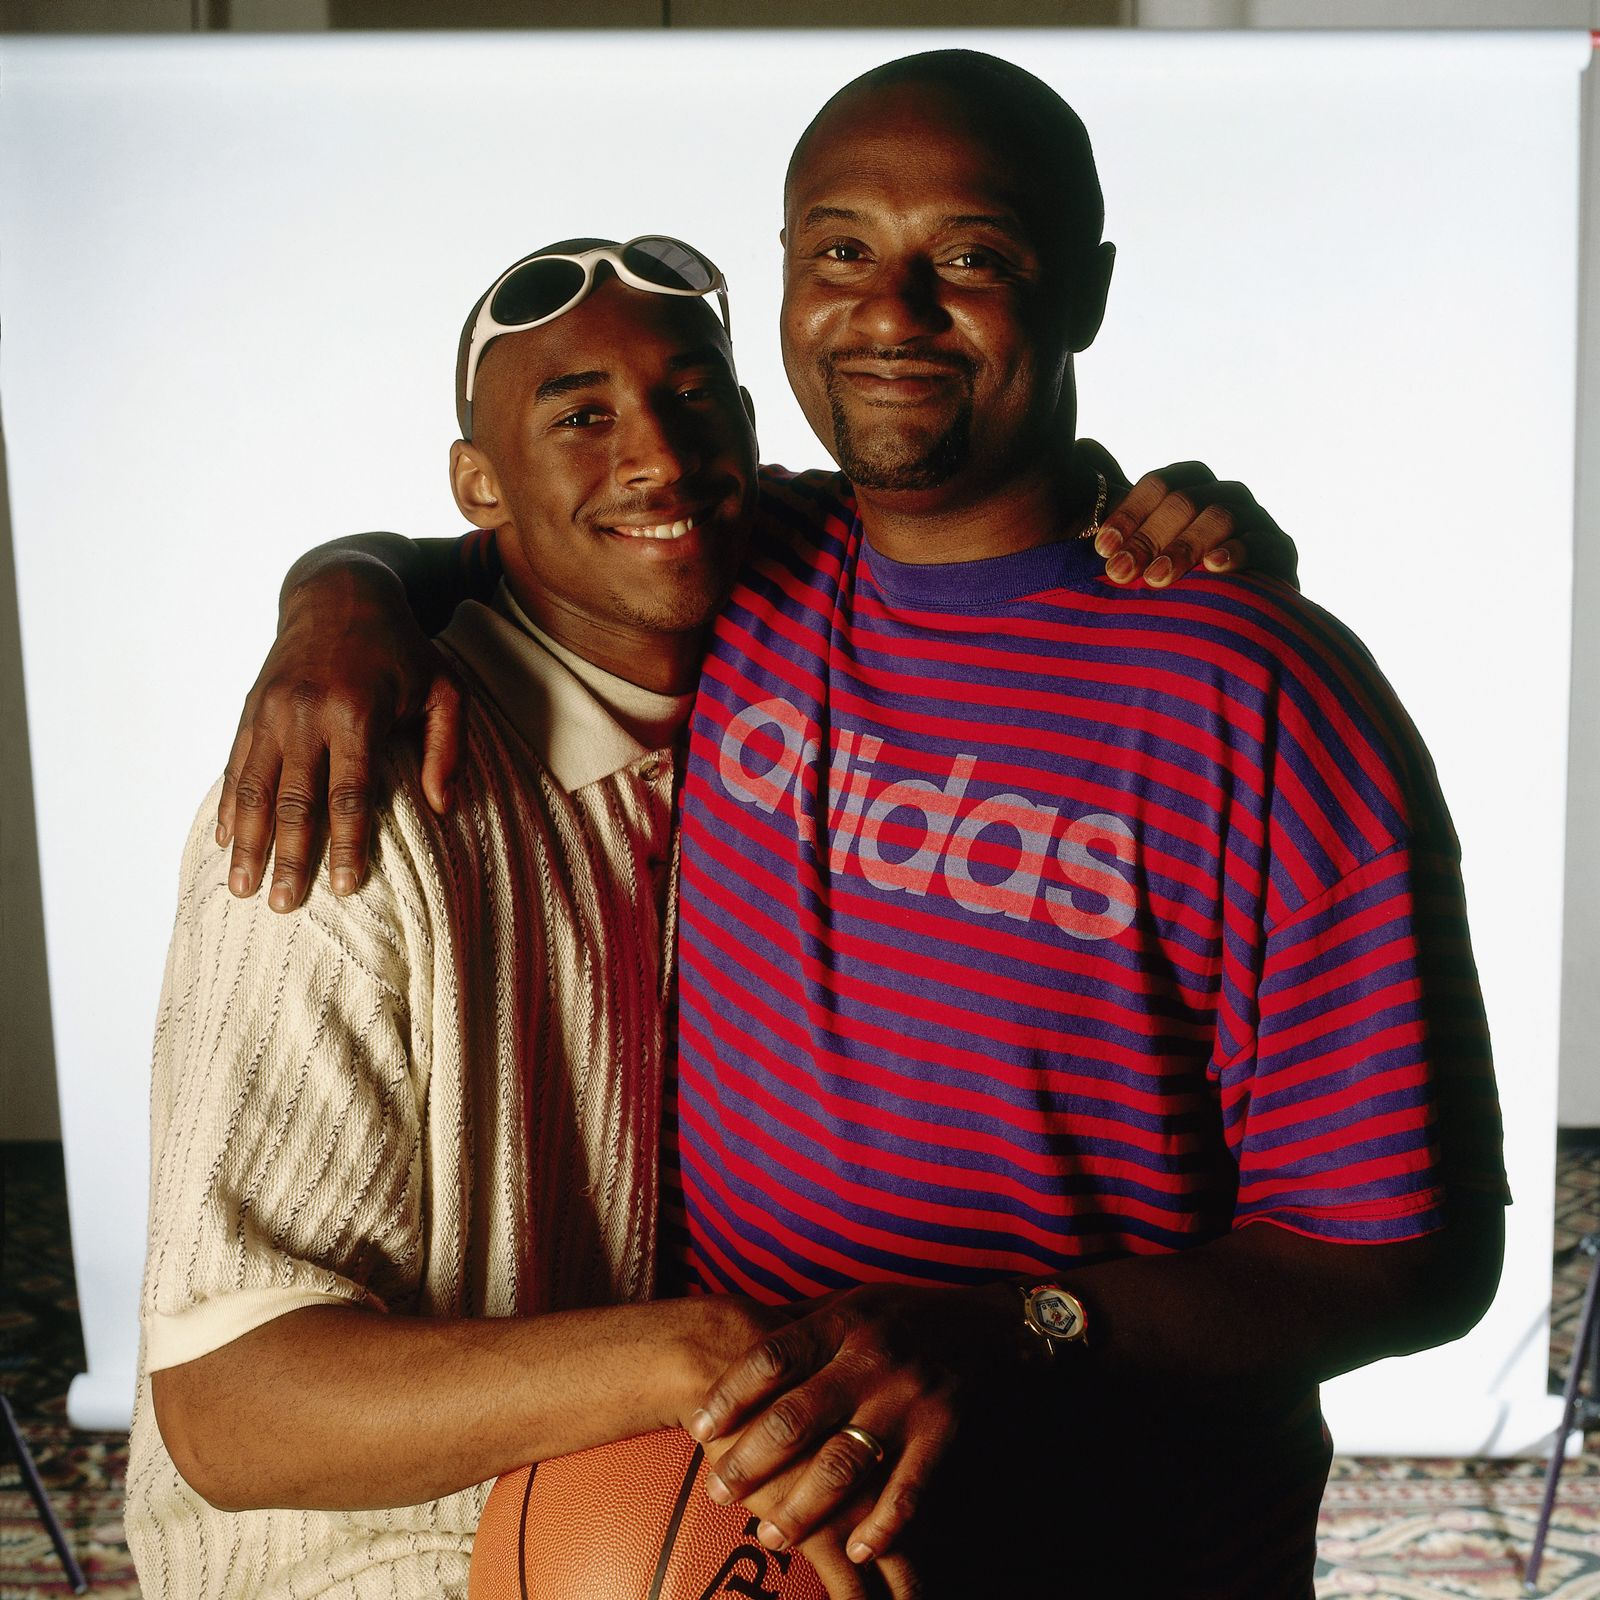 Bryant and father pose for a portrait